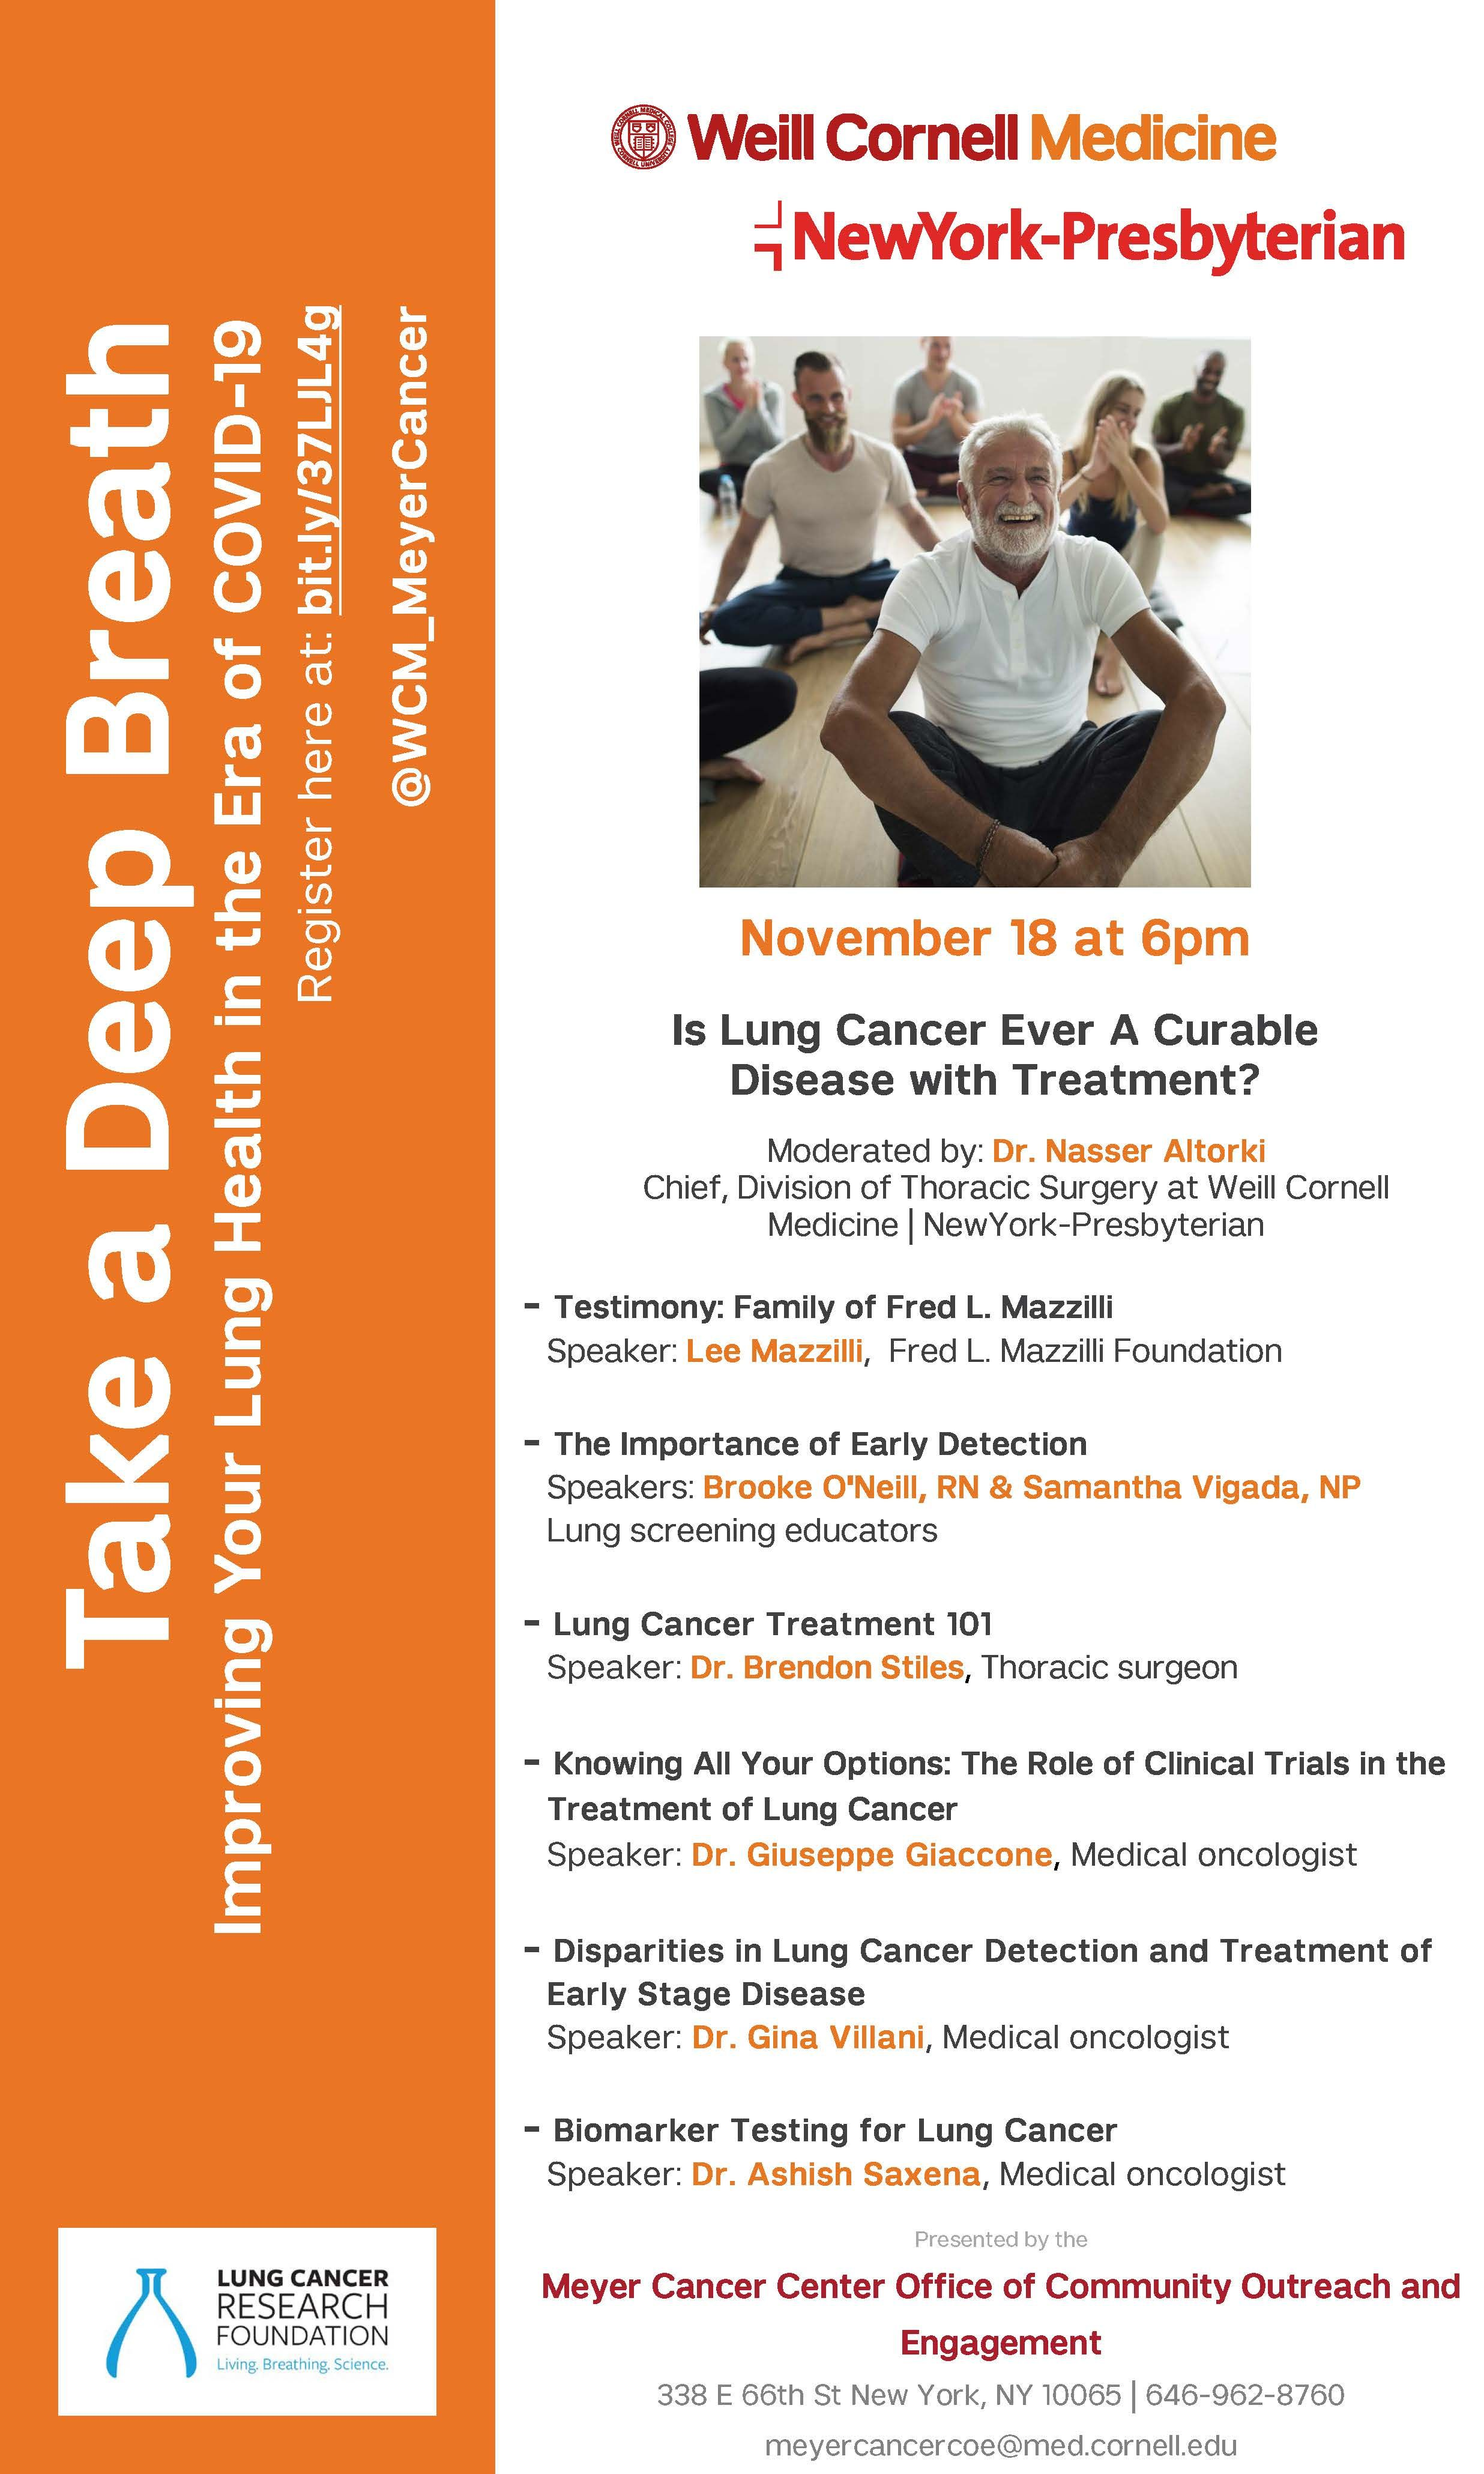 lung cancer awareness month, nasser altorki, brendon stiles, thoracic surgeon, cardiothoracic surgery, lung cancer covid-19